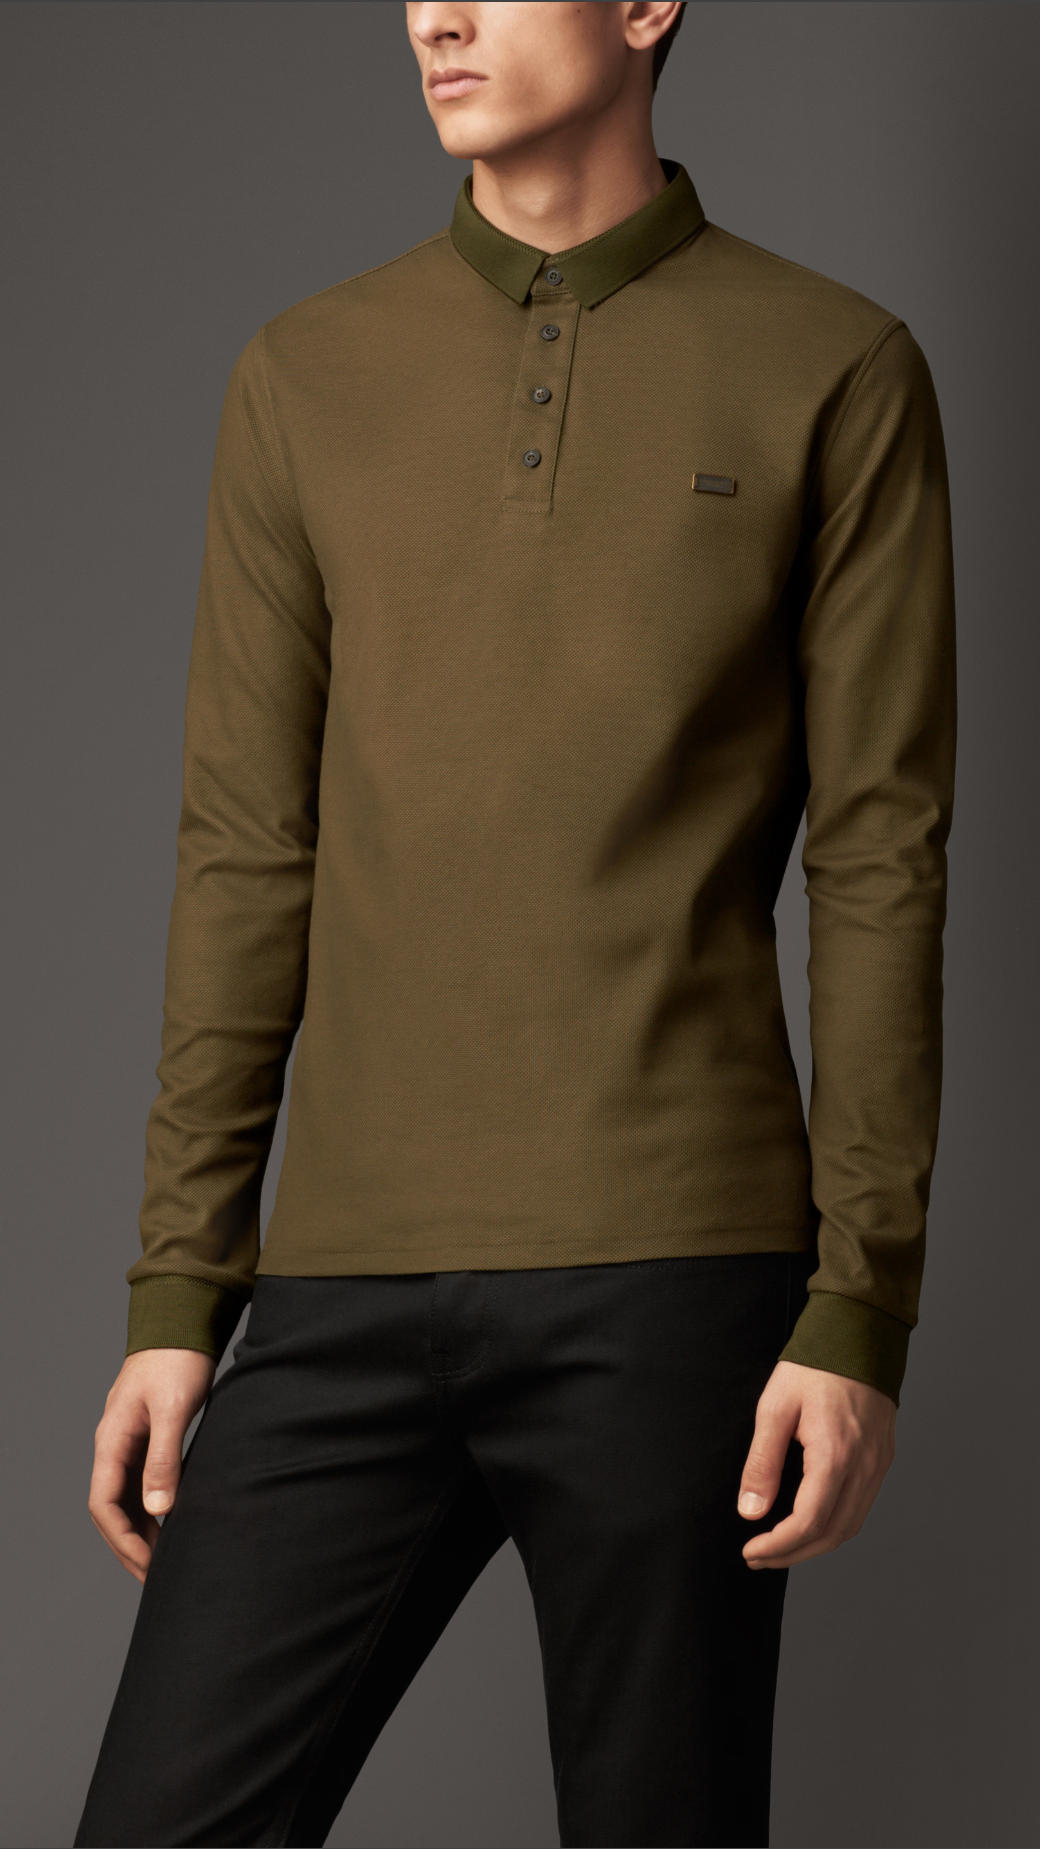 Burberry Long Sleeve Polo Shirt In Brown For Men Lyst